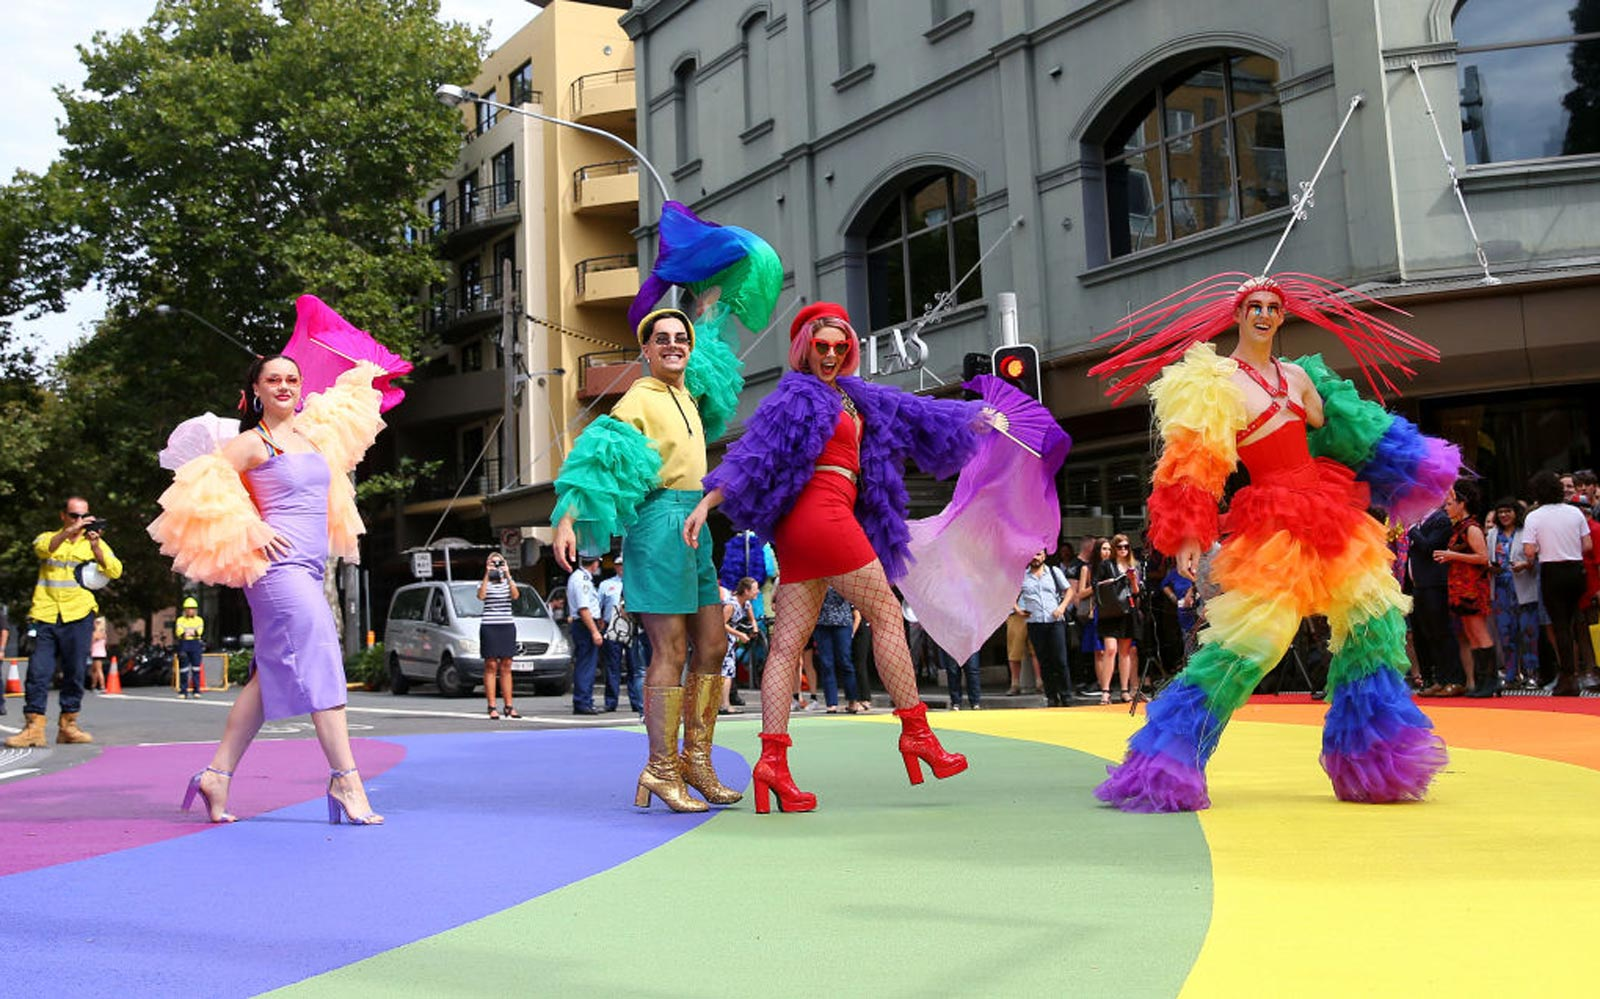 Sydney Unveils Permanent Rainbow Crosswalk As Symbol of LGBTQ Pride